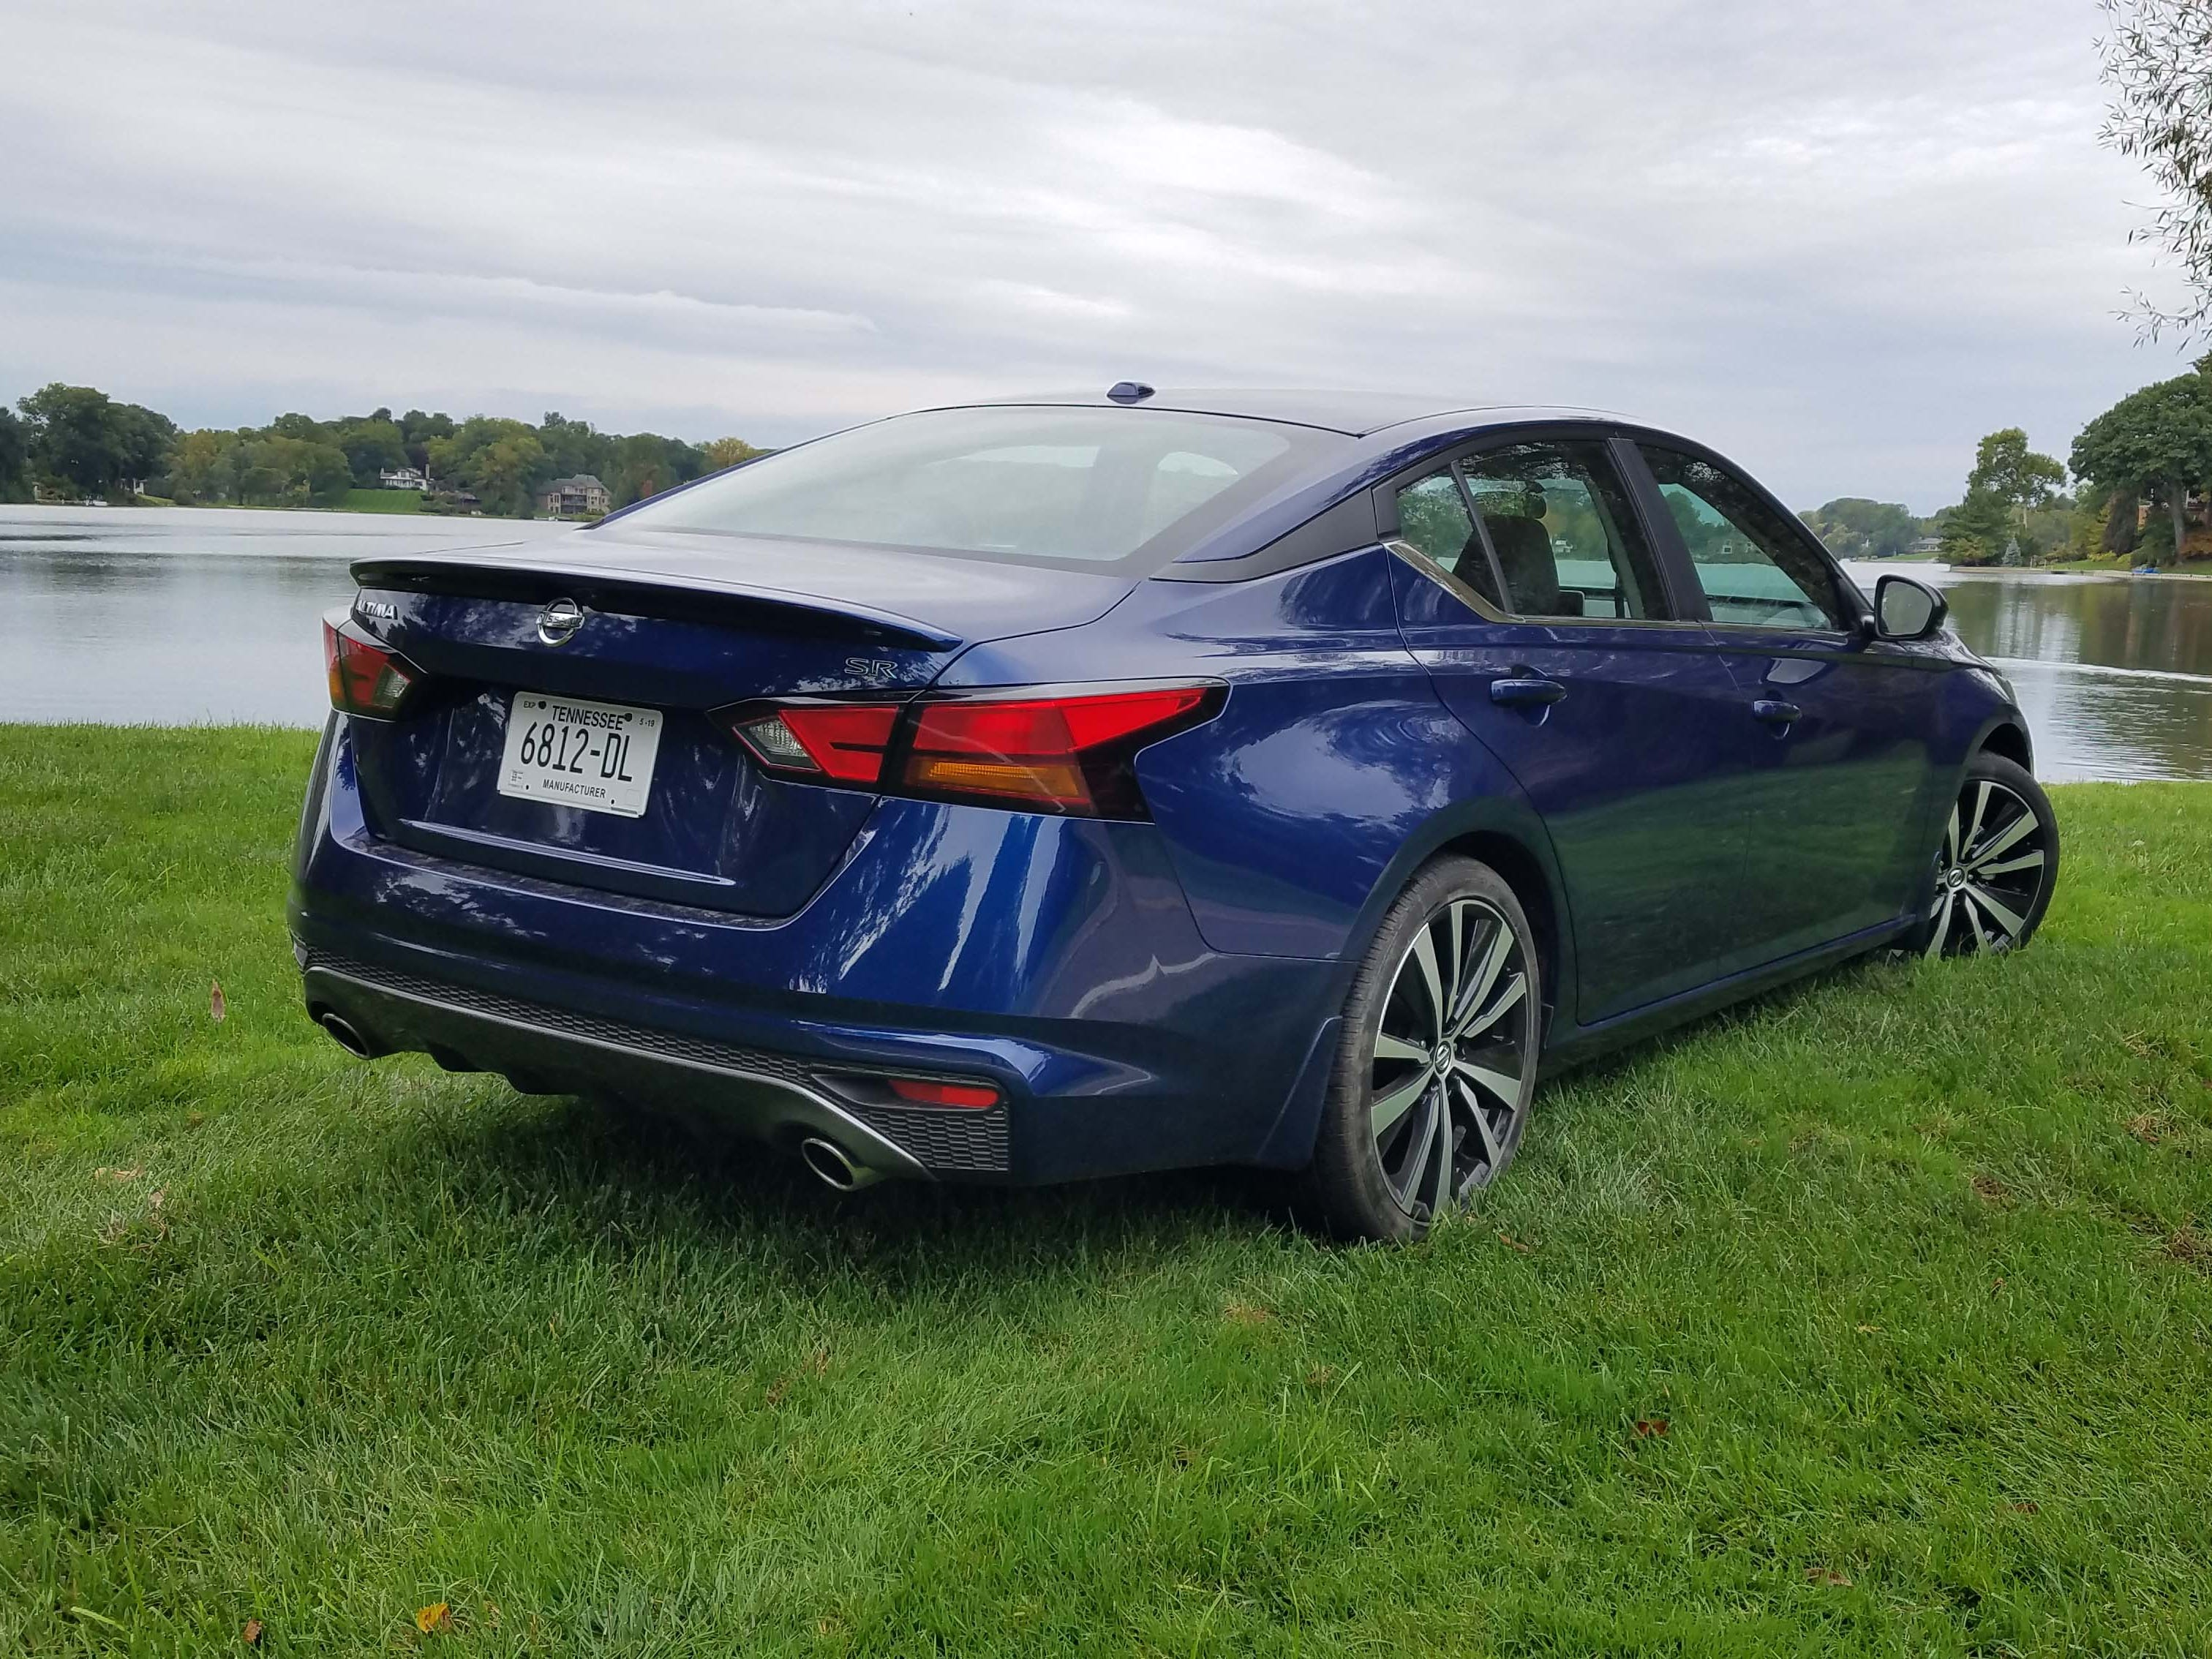 The 2019 Altima deserves a look in sport utility-crazy America with its stylish looks, big rear seat room and all-wheel-drive option.